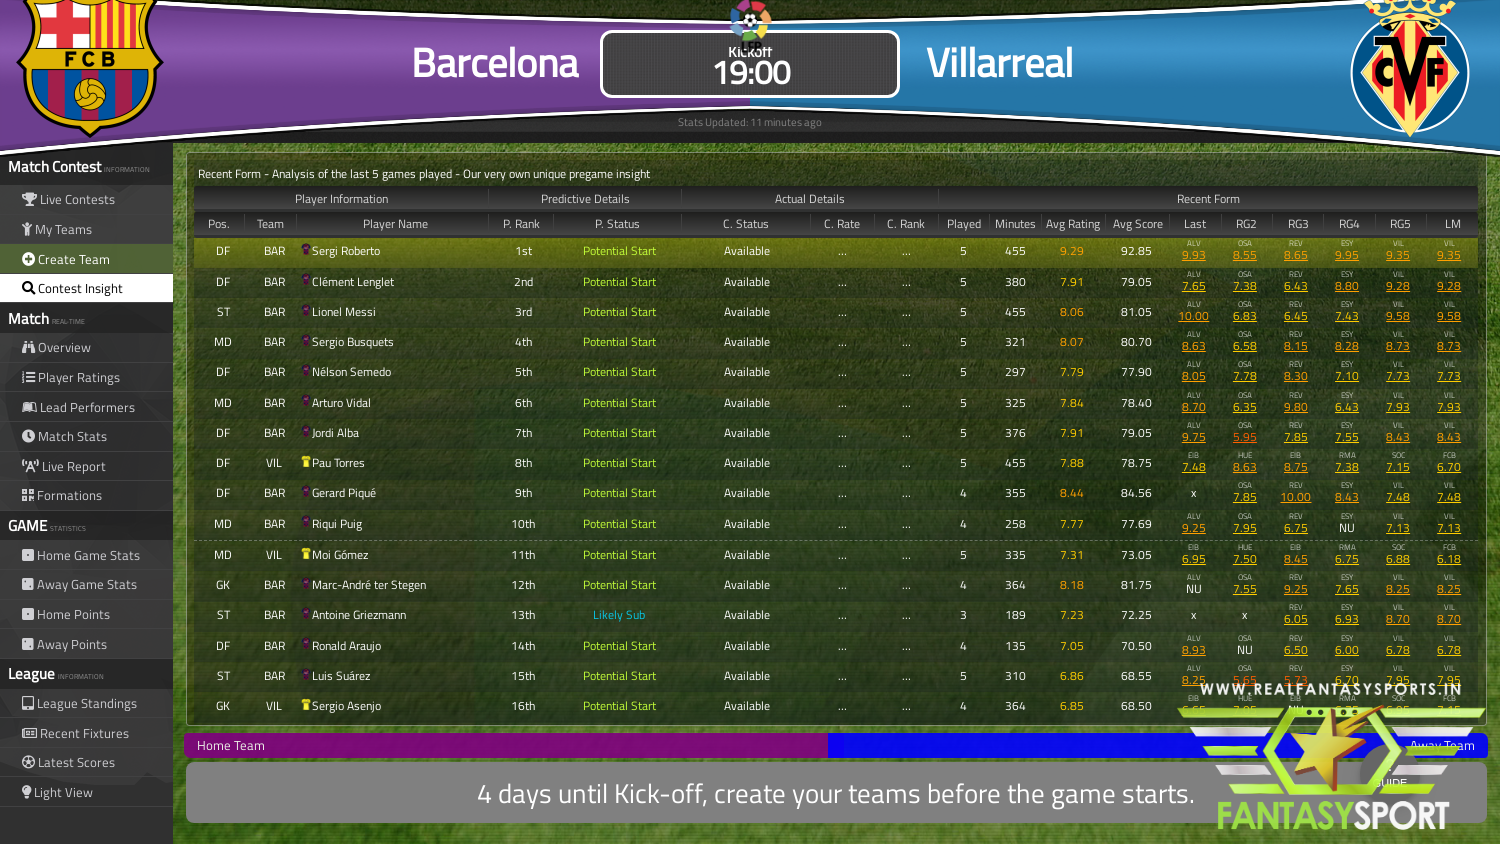 Dream Team Pick For Barcelona Vs Villarreal